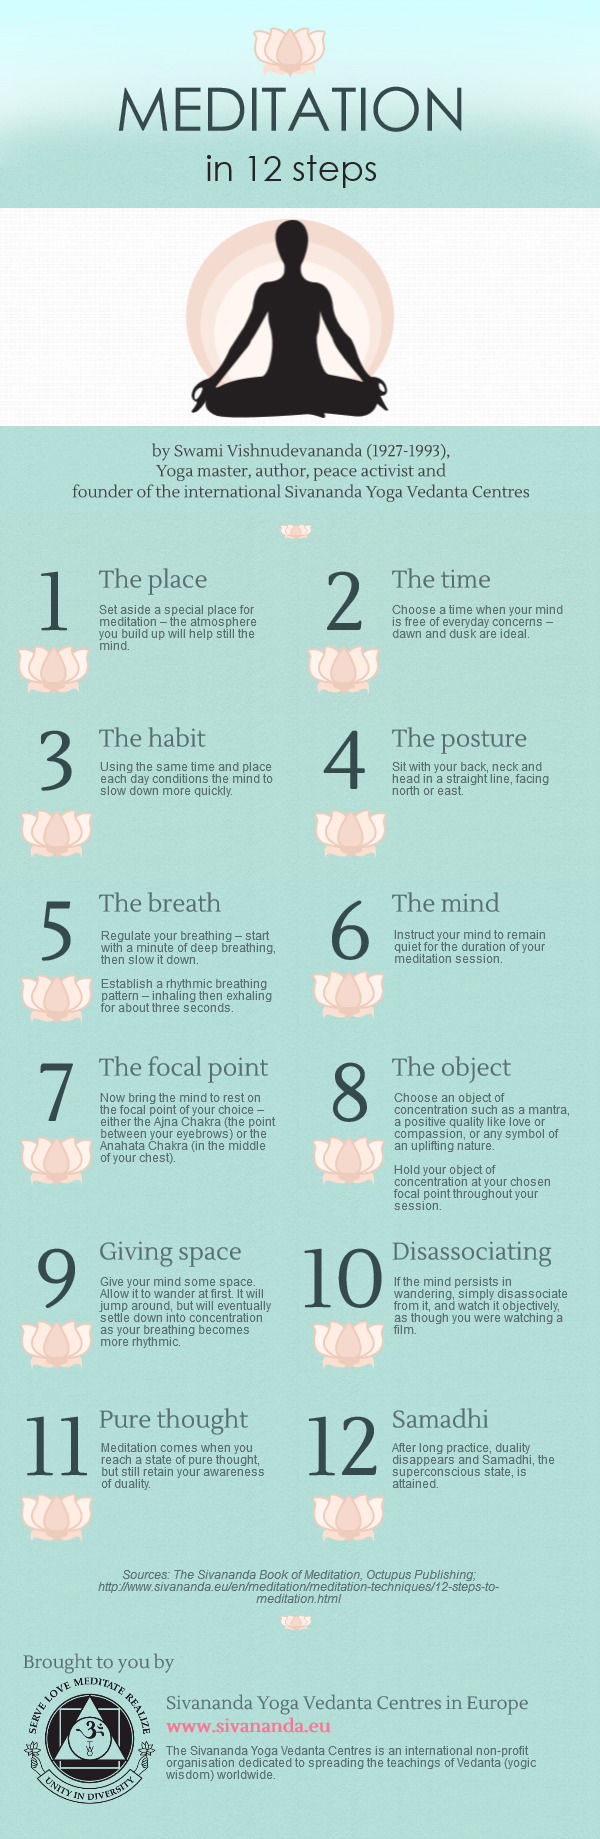 Meditation In 12 Steps Pictures Photos And Images For